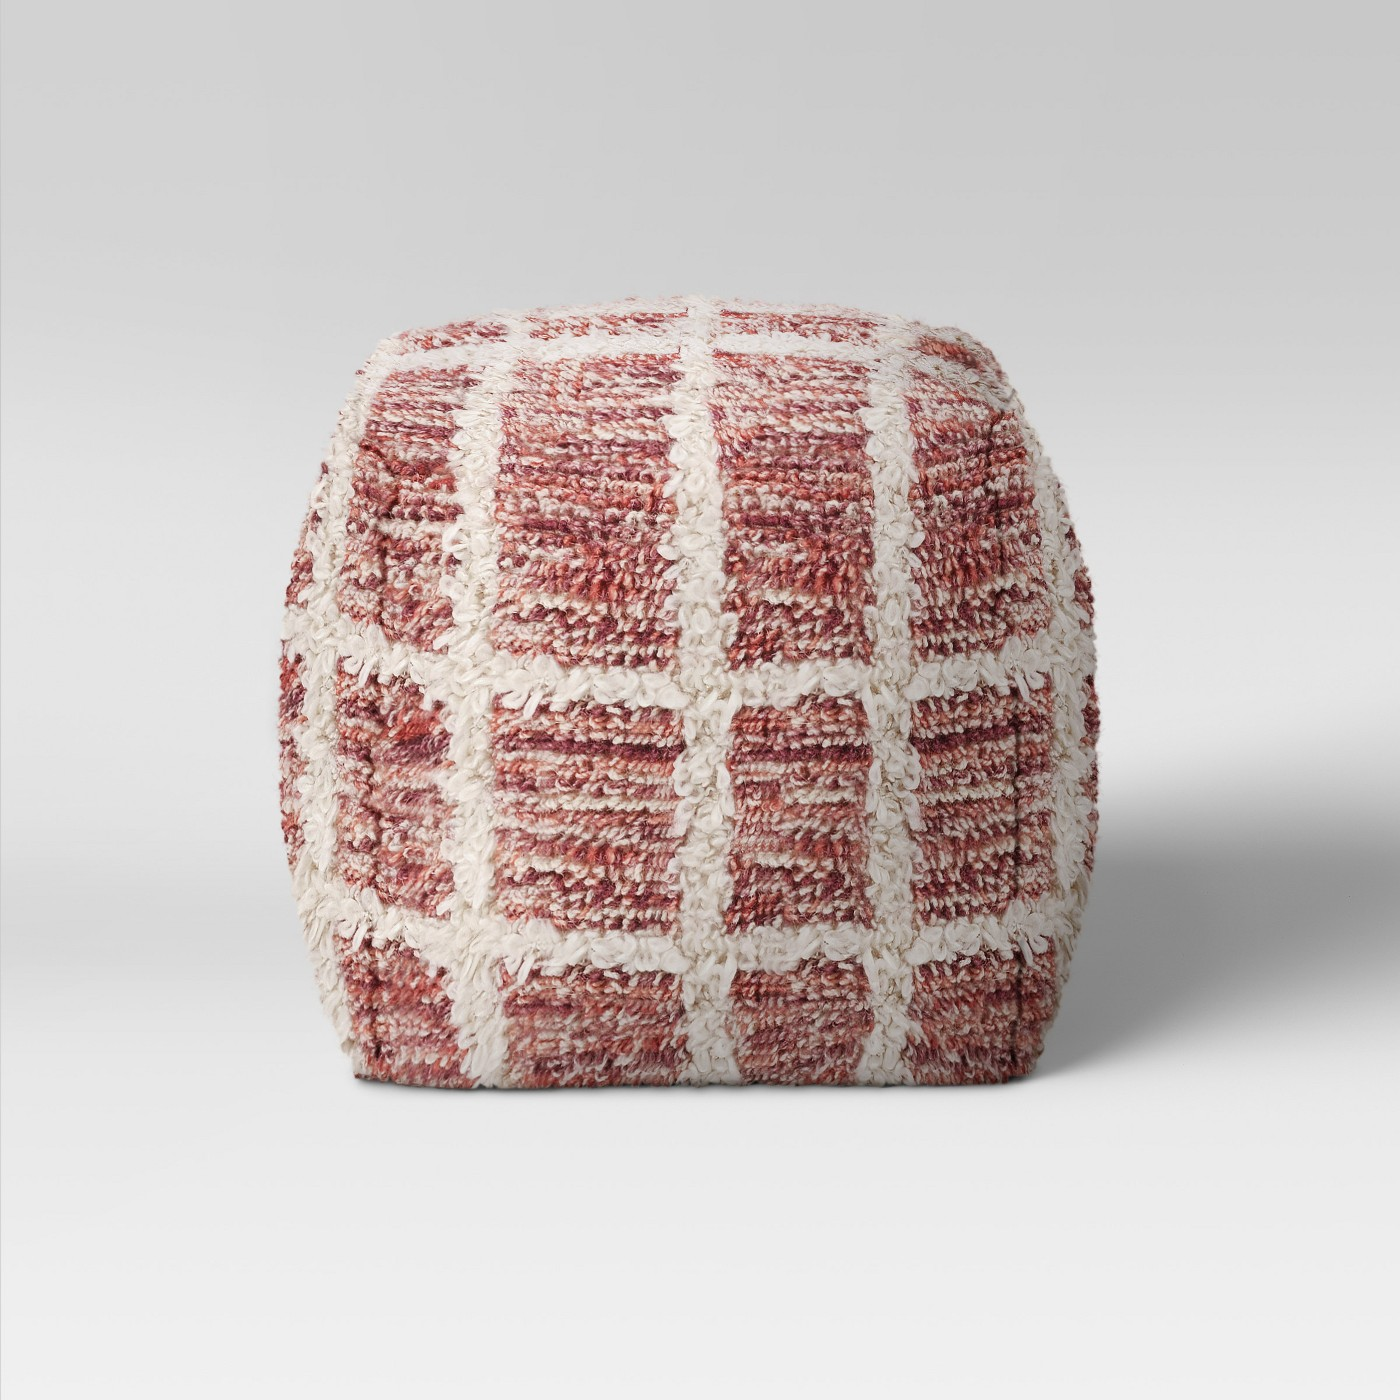 hygge decor a pouf